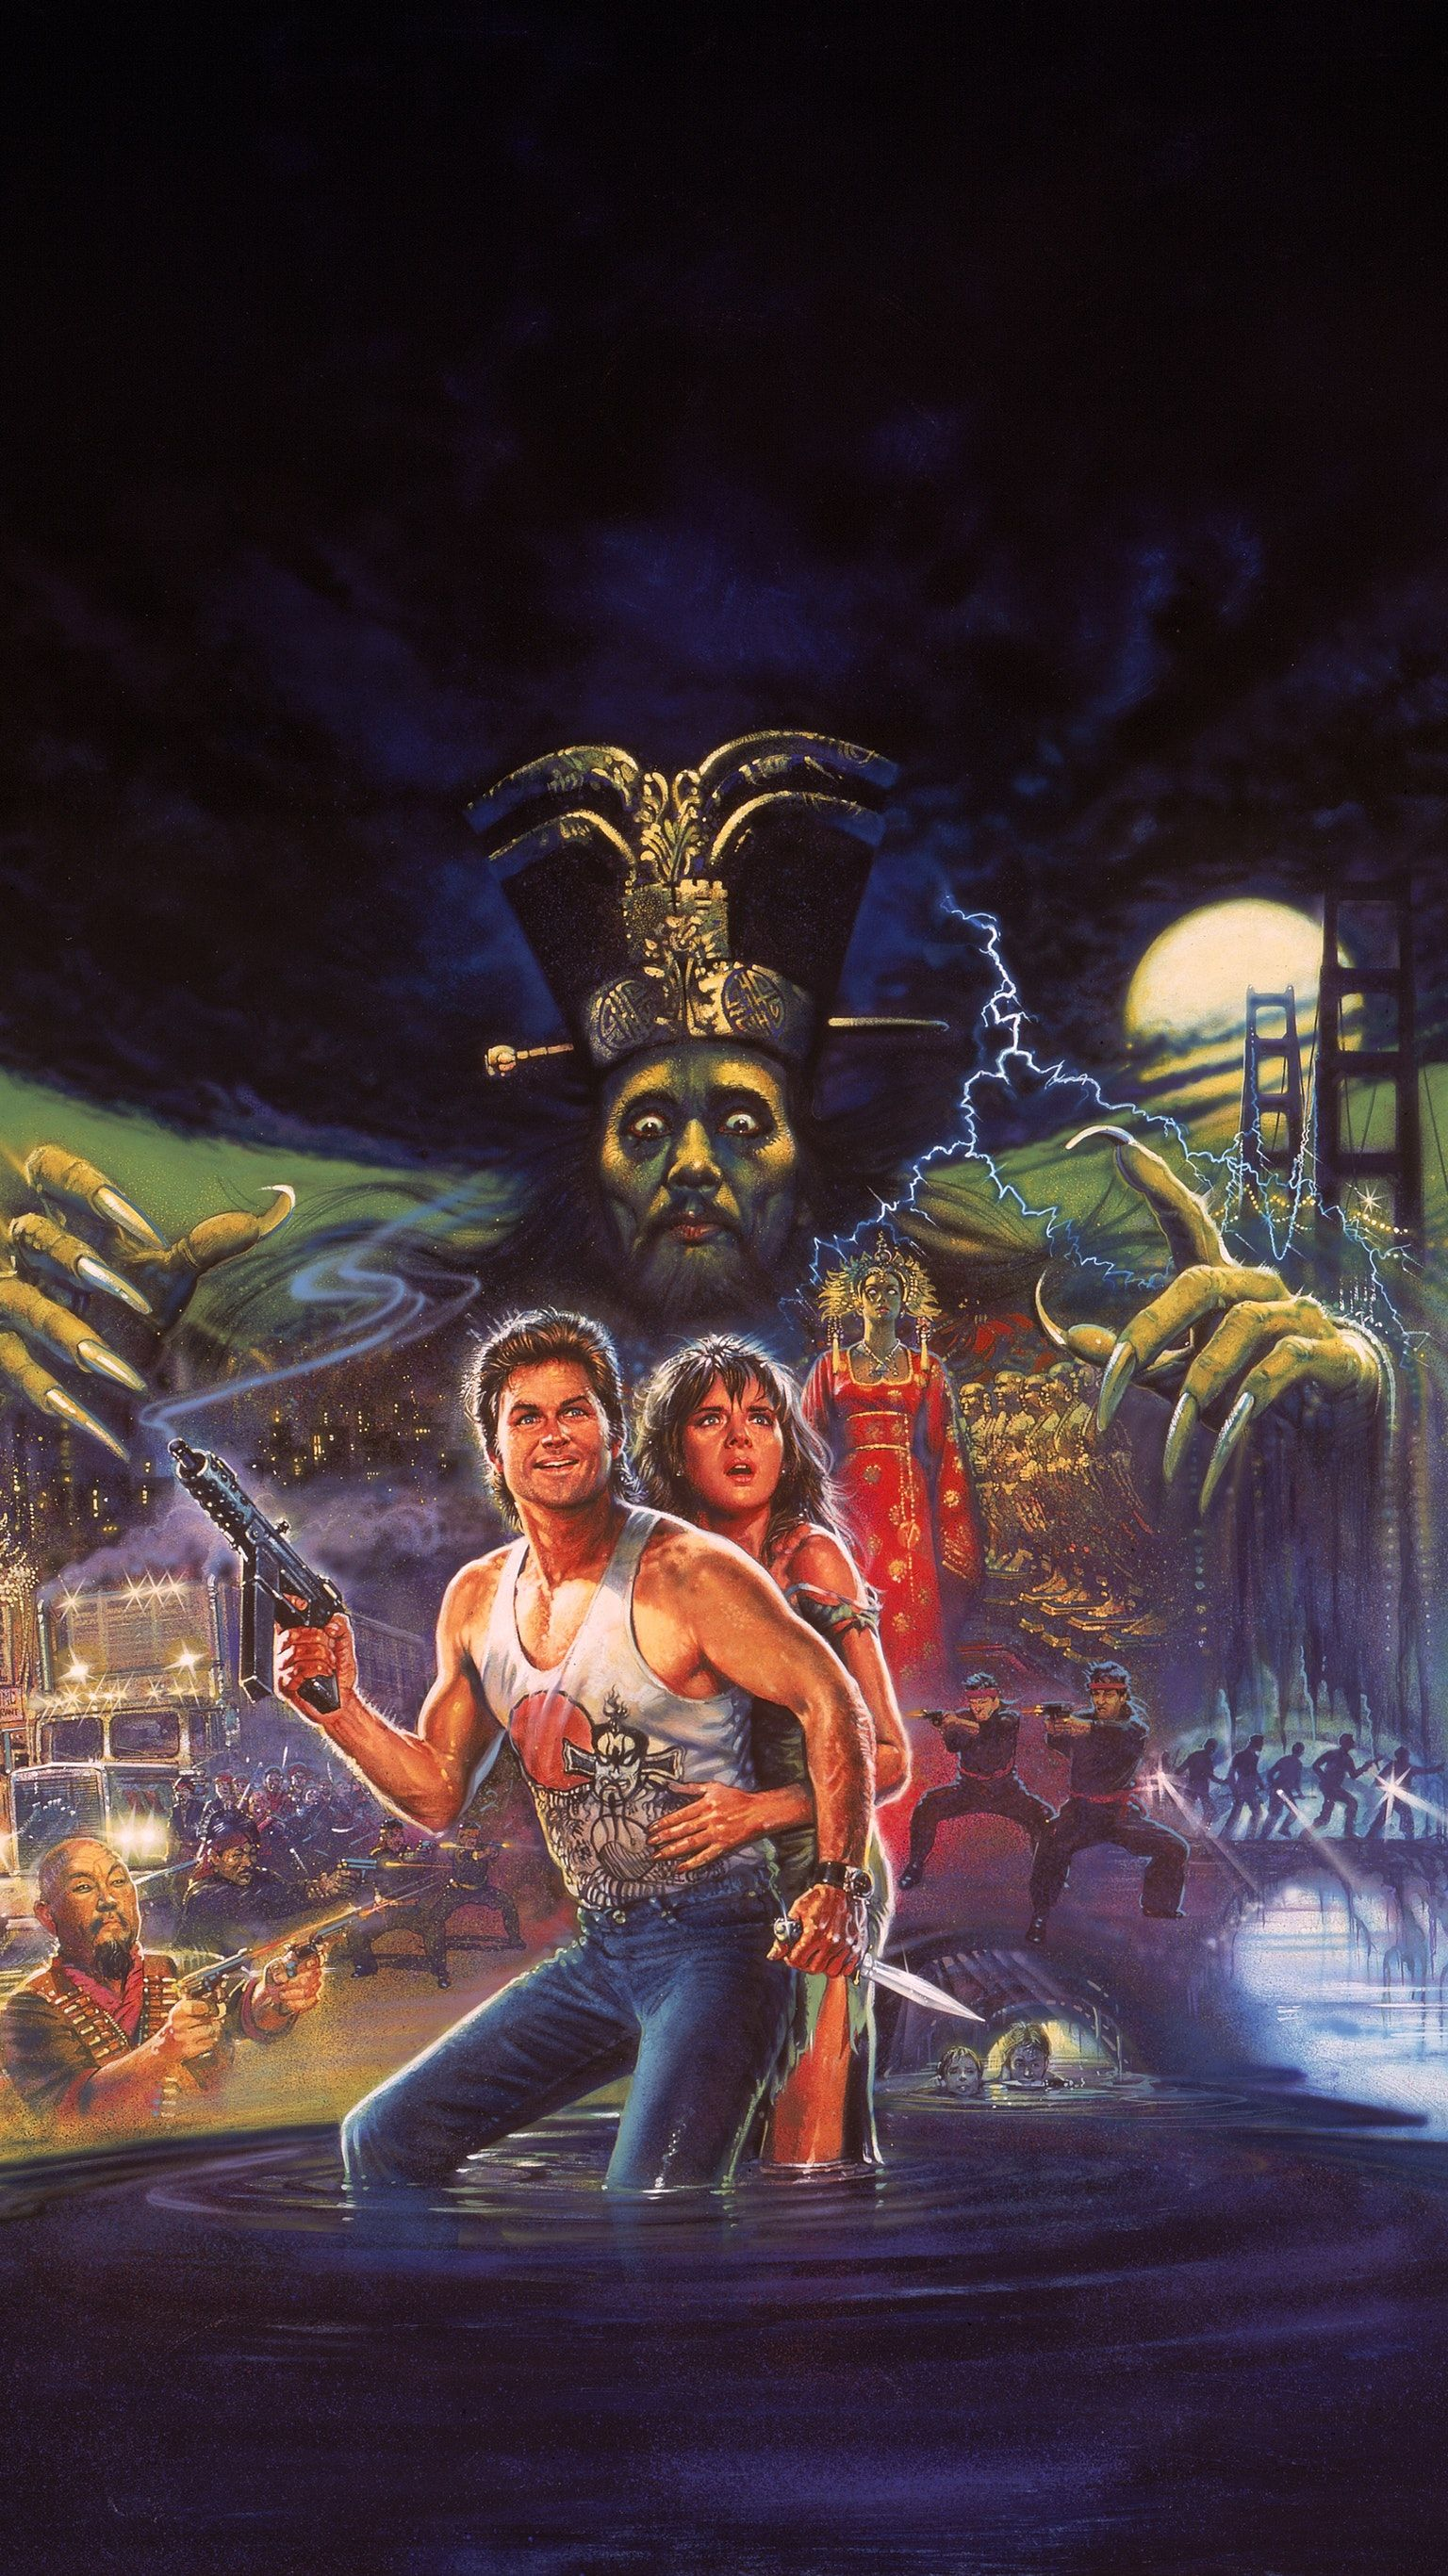 Big Trouble In Little China 1986 Phone Wallpaper In 2020 Movie